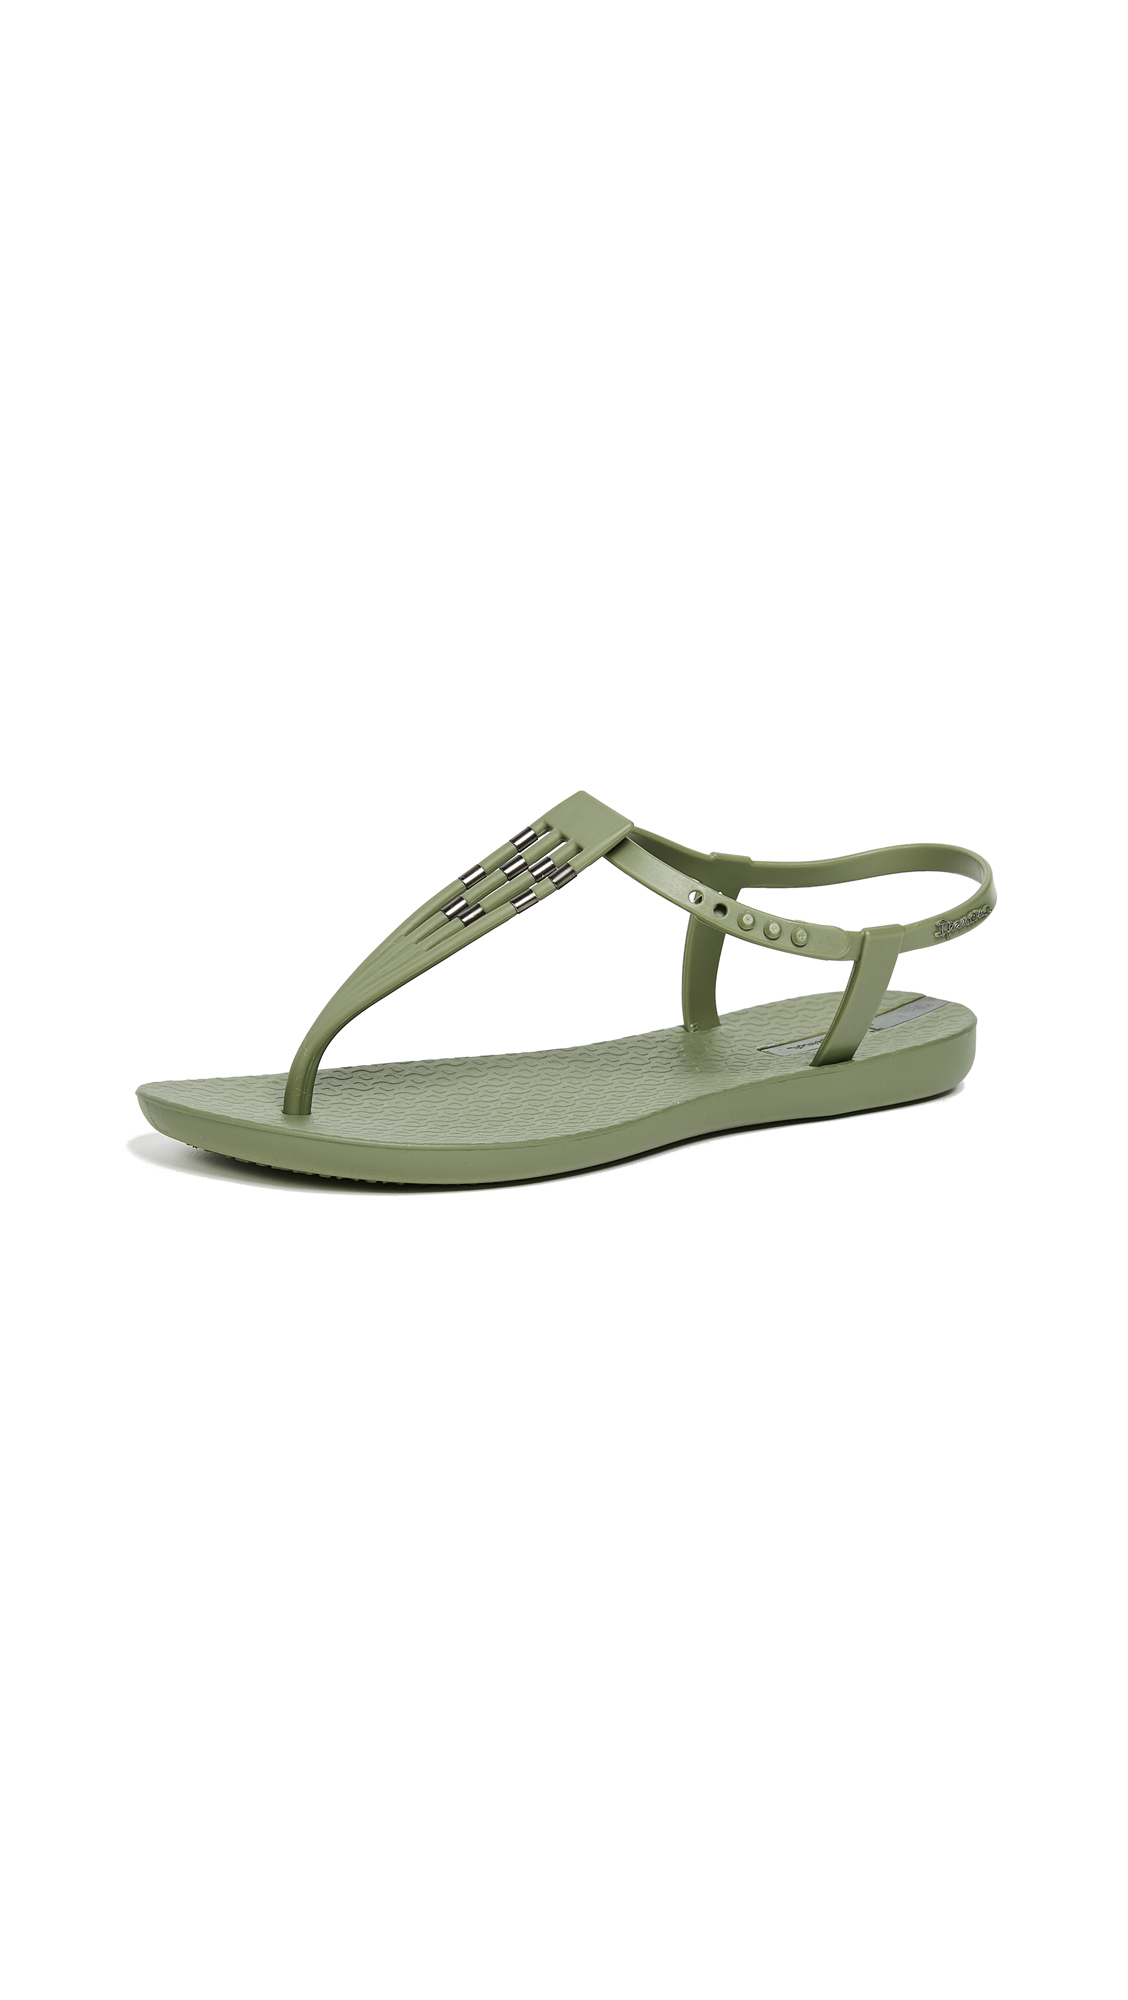 Ipanema Sunray T-Strap Sandals - Green/Green